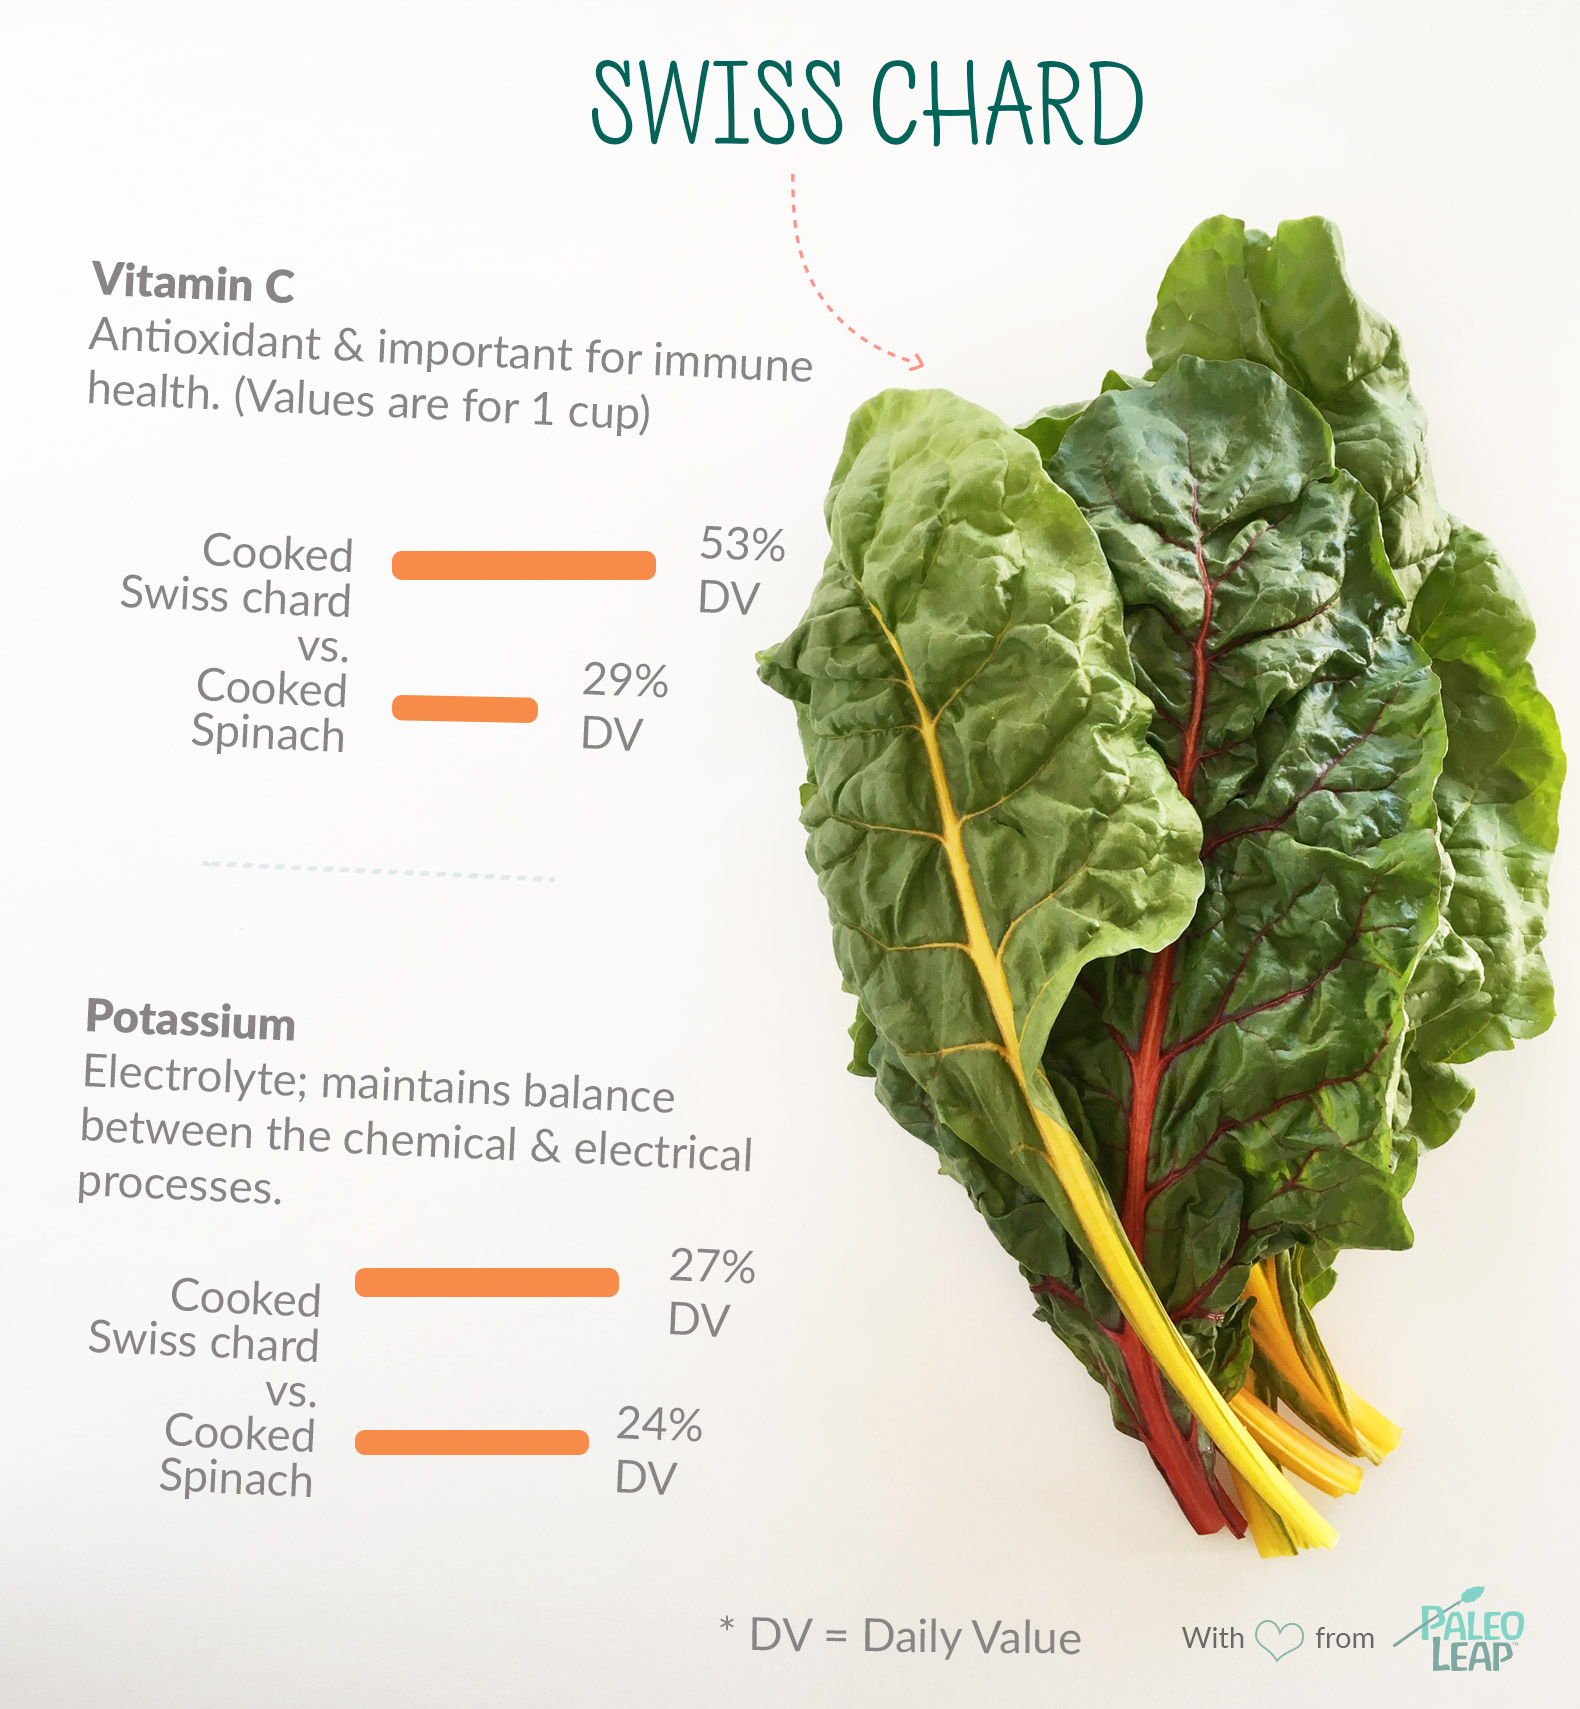 Swiss chard highlights